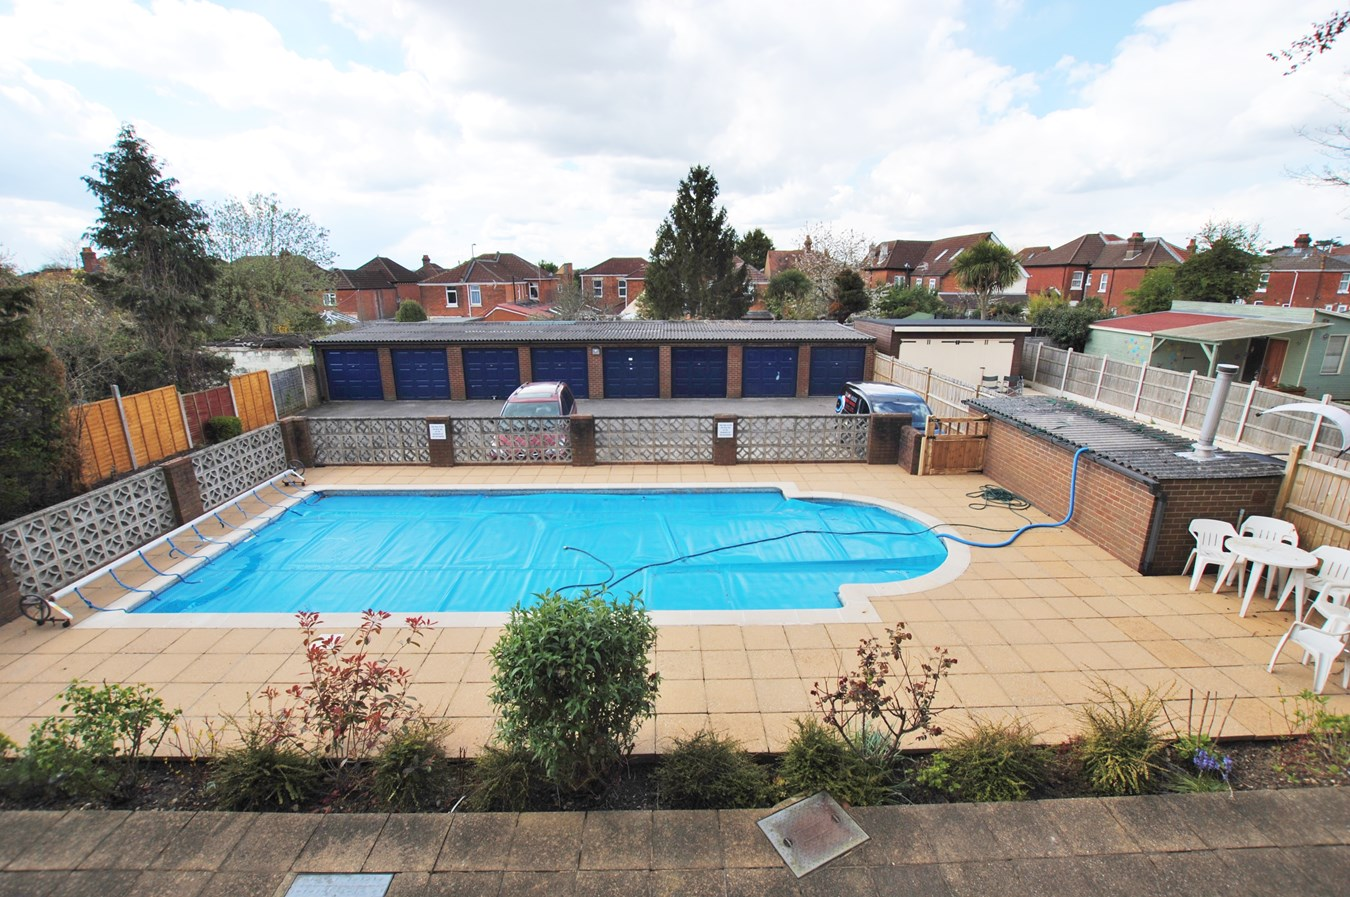 1 bedroom flat for rent in southampton - Shirley swimming pool southampton ...